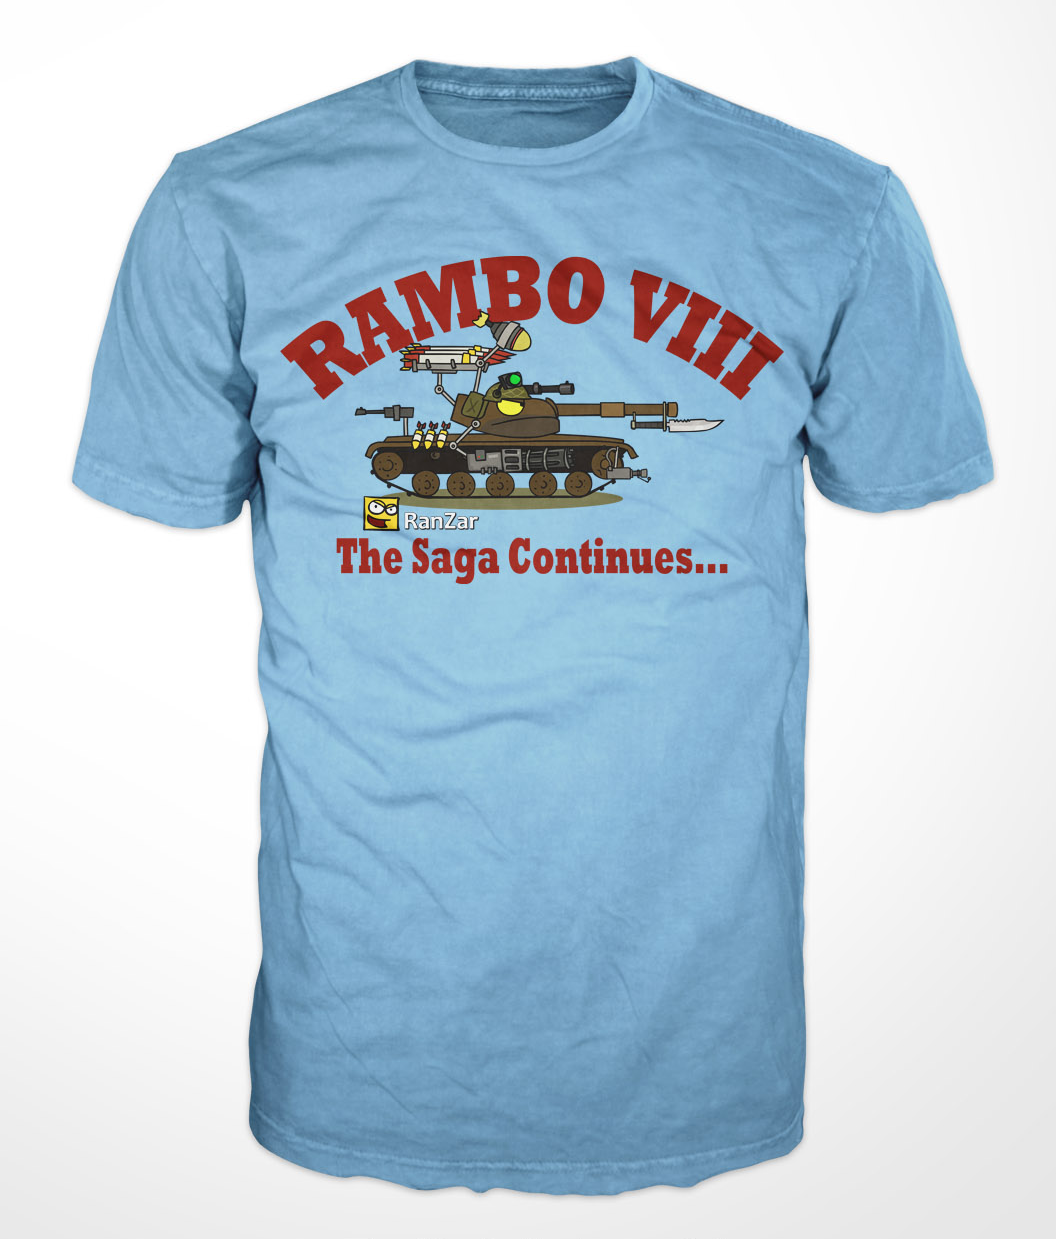 10359510 John Rambo - RanZar shirt Mens Tops, Design, T Shirt, Sports, Fashion